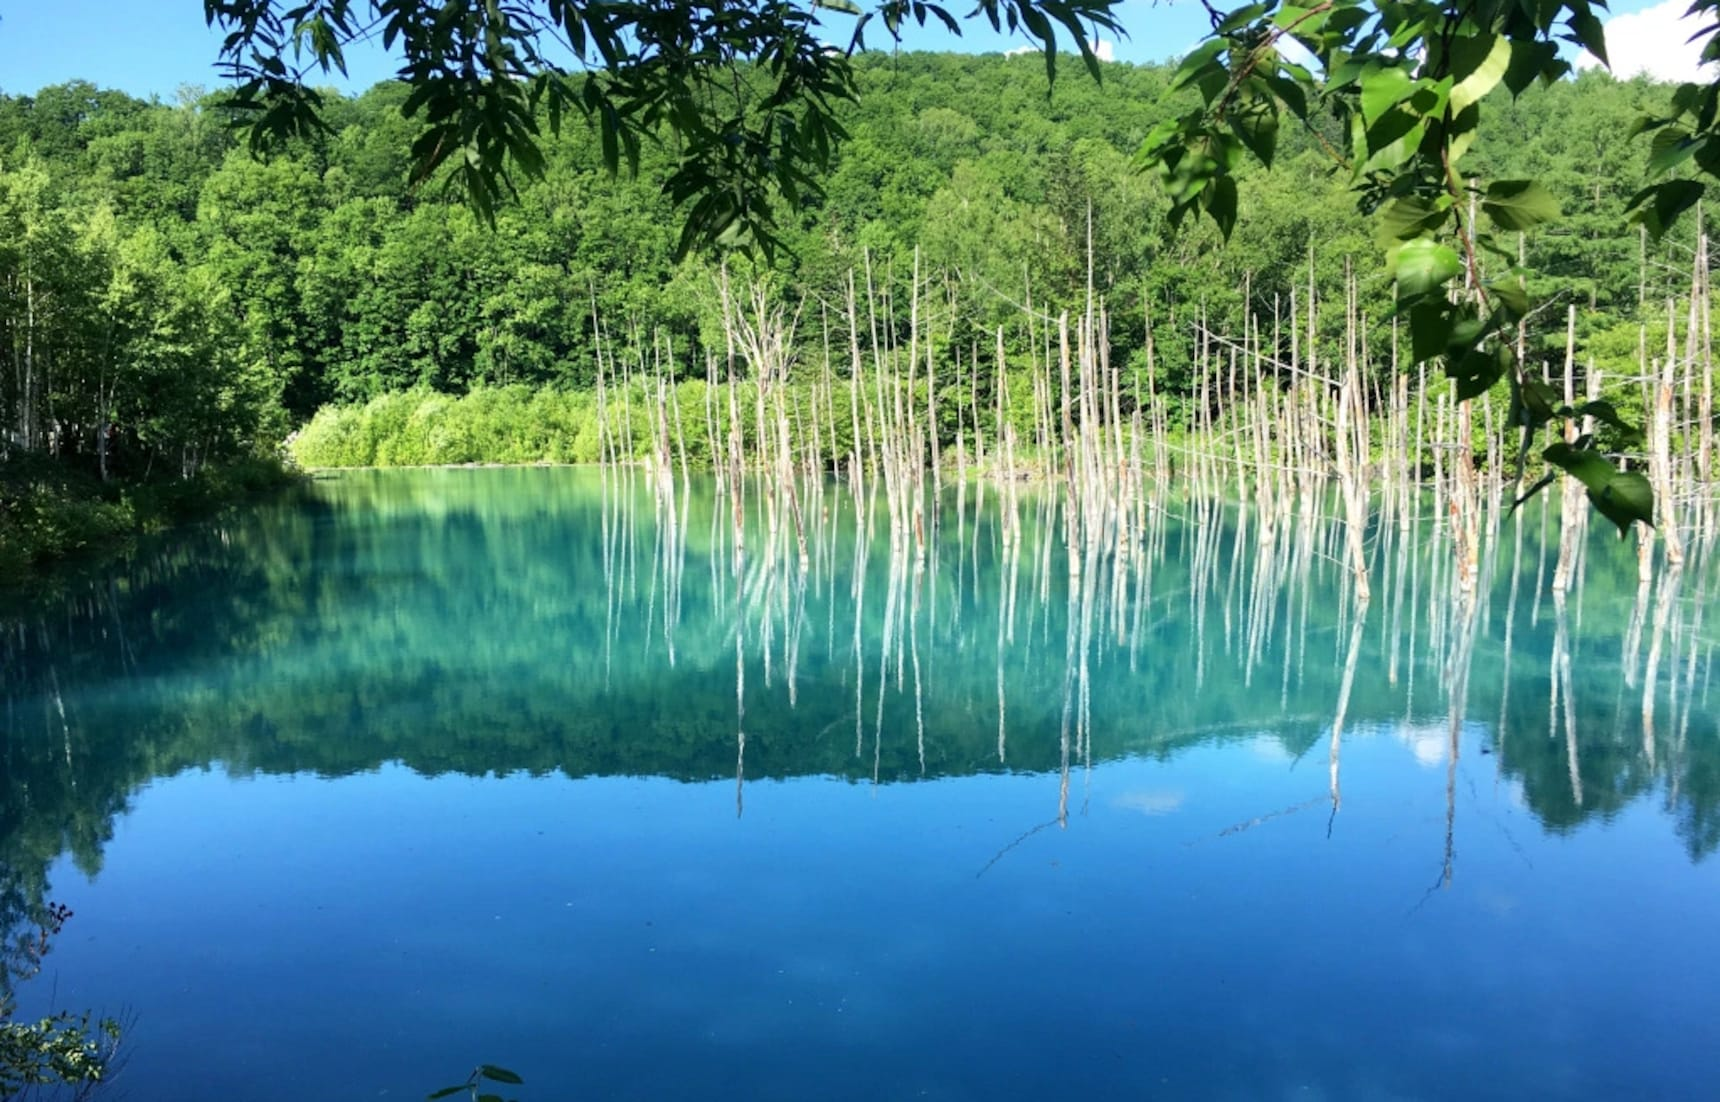 Gorgeous Blue Pond Is Worth a Trip Up North